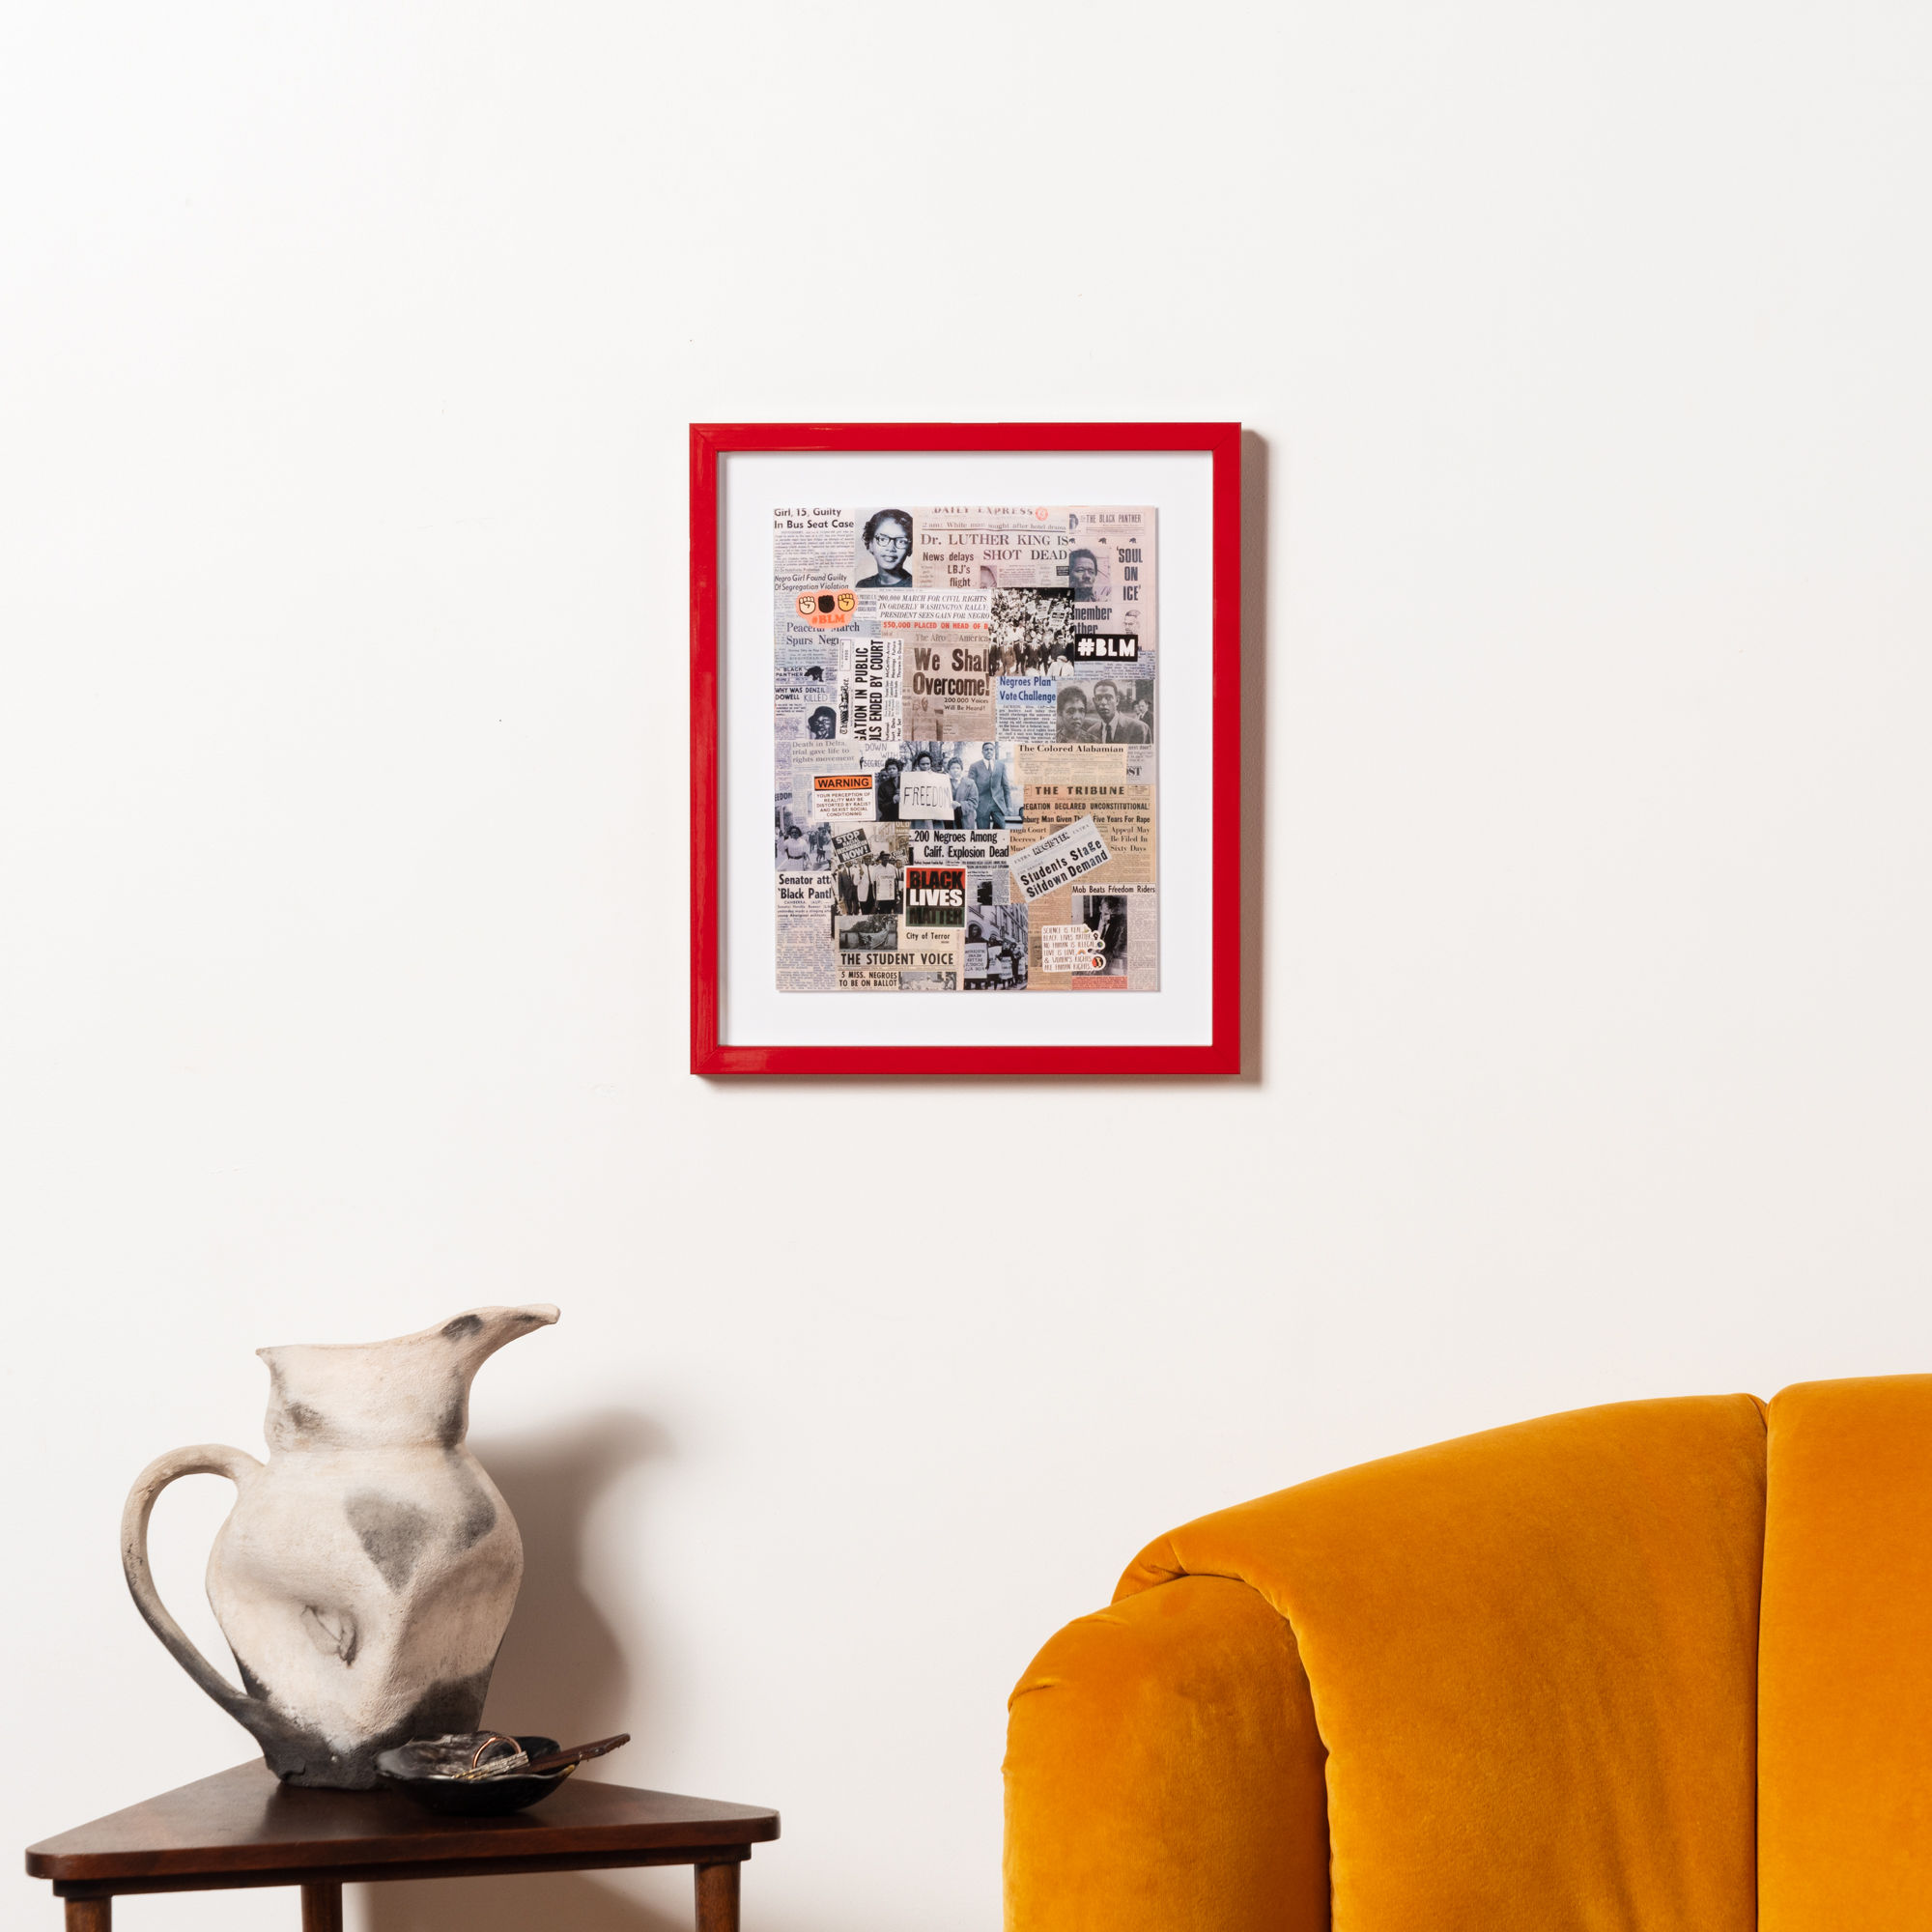 social justice art in red frame